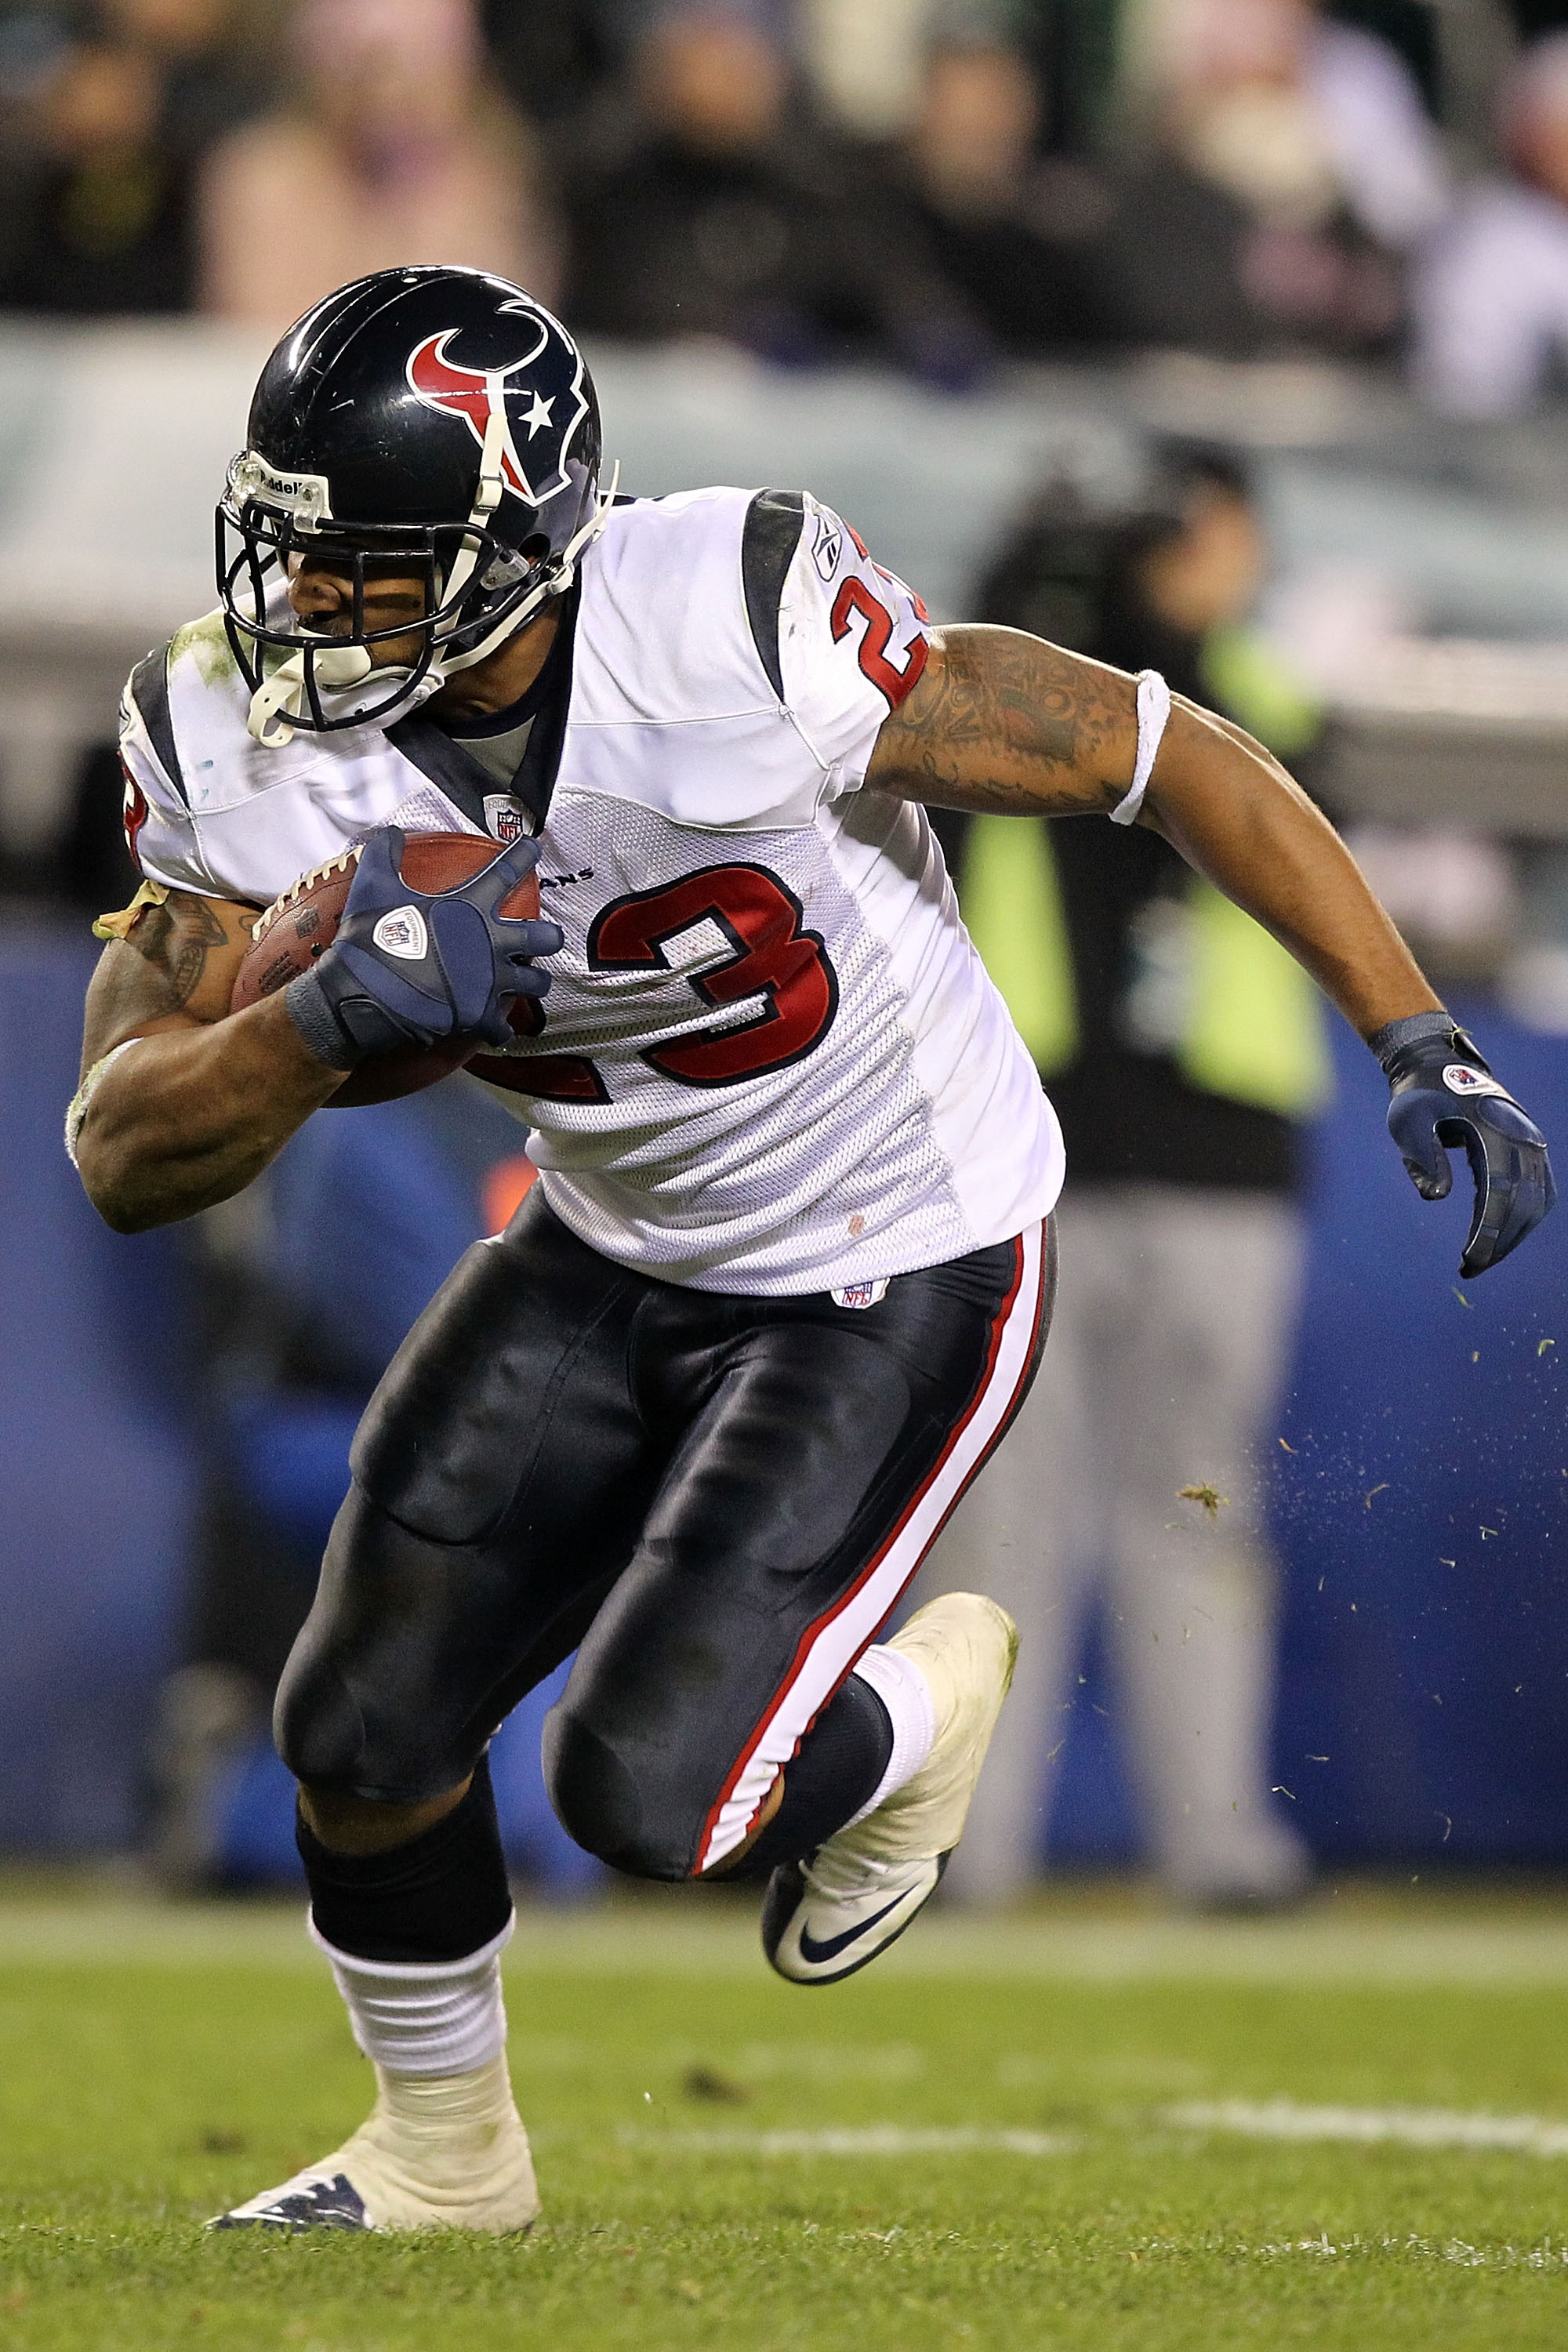 PHILADELPHIA, PA - DECEMBER 02:  Arian Foster #23 of the Houston Texans scores on a 14-yard touchdown reception in the third quarter against the Philadelphia Eagles at Lincoln Financial Field on December 2, 2010 in Philadelphia, Pennsylvania.  (Photo by A